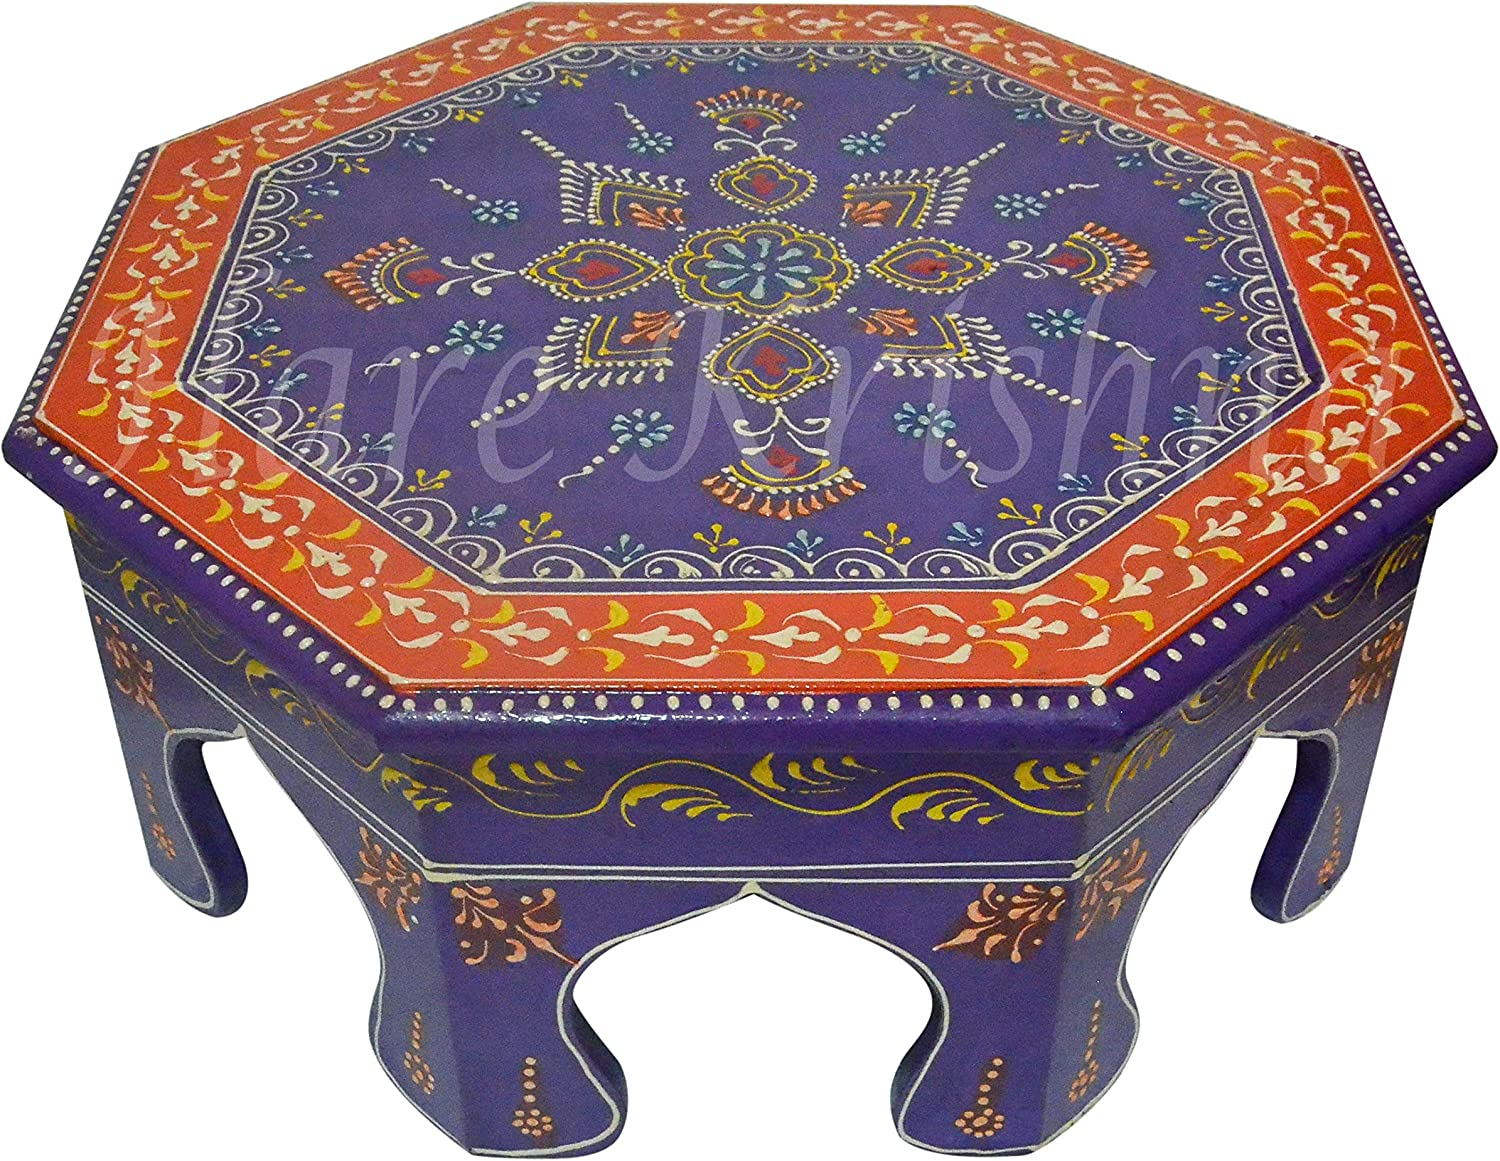 Home Decorative Corner Mini Stool Living Room Designer Side End Low Table (Purple) 14 x 14 x 6 Inches